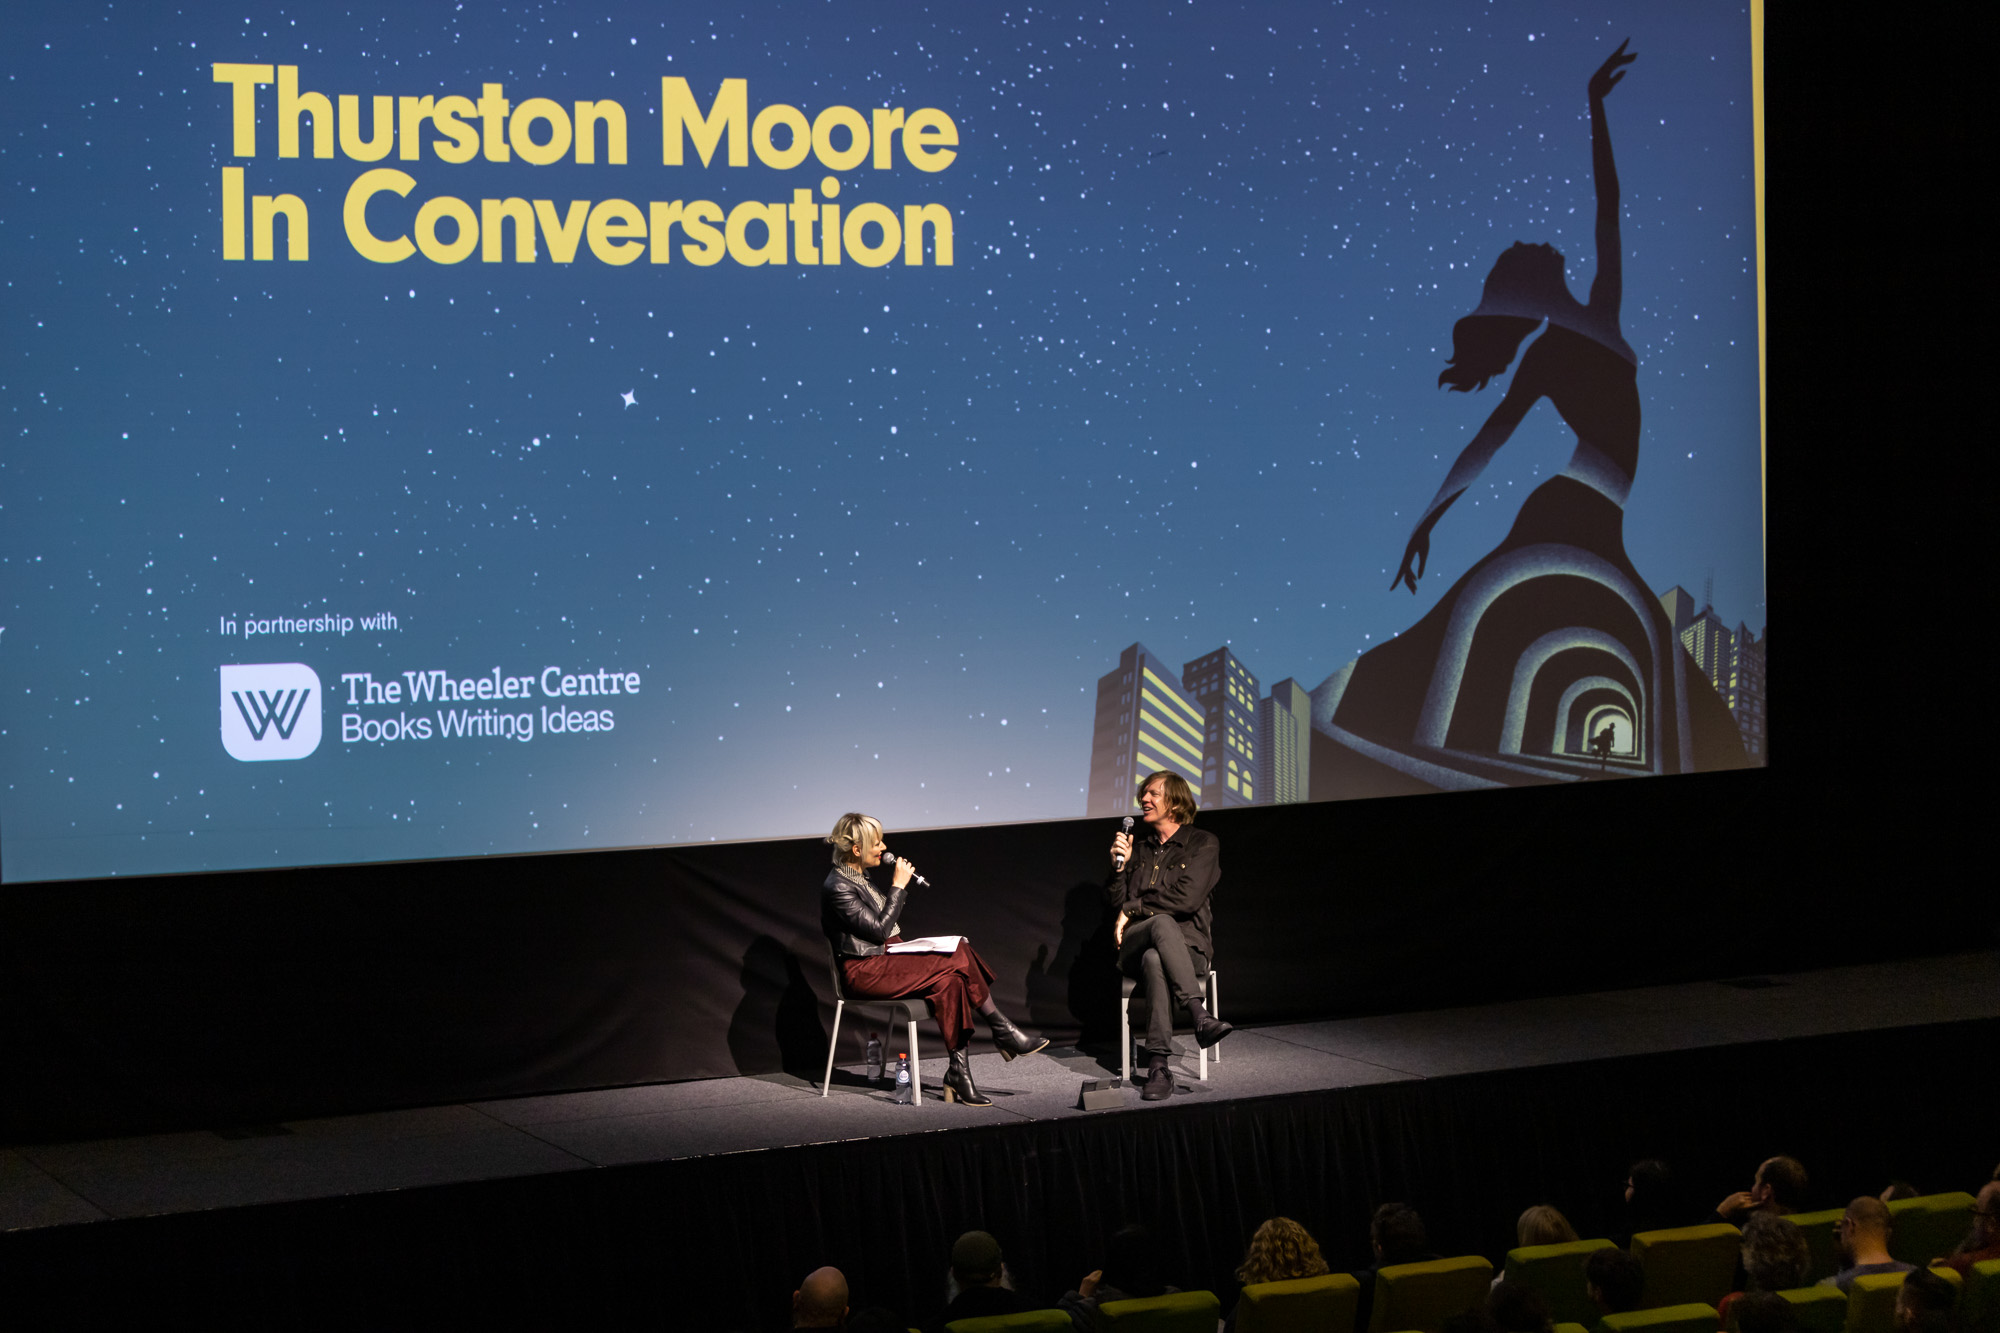 Photograph of Jacinta Parsons and Thurston Moore